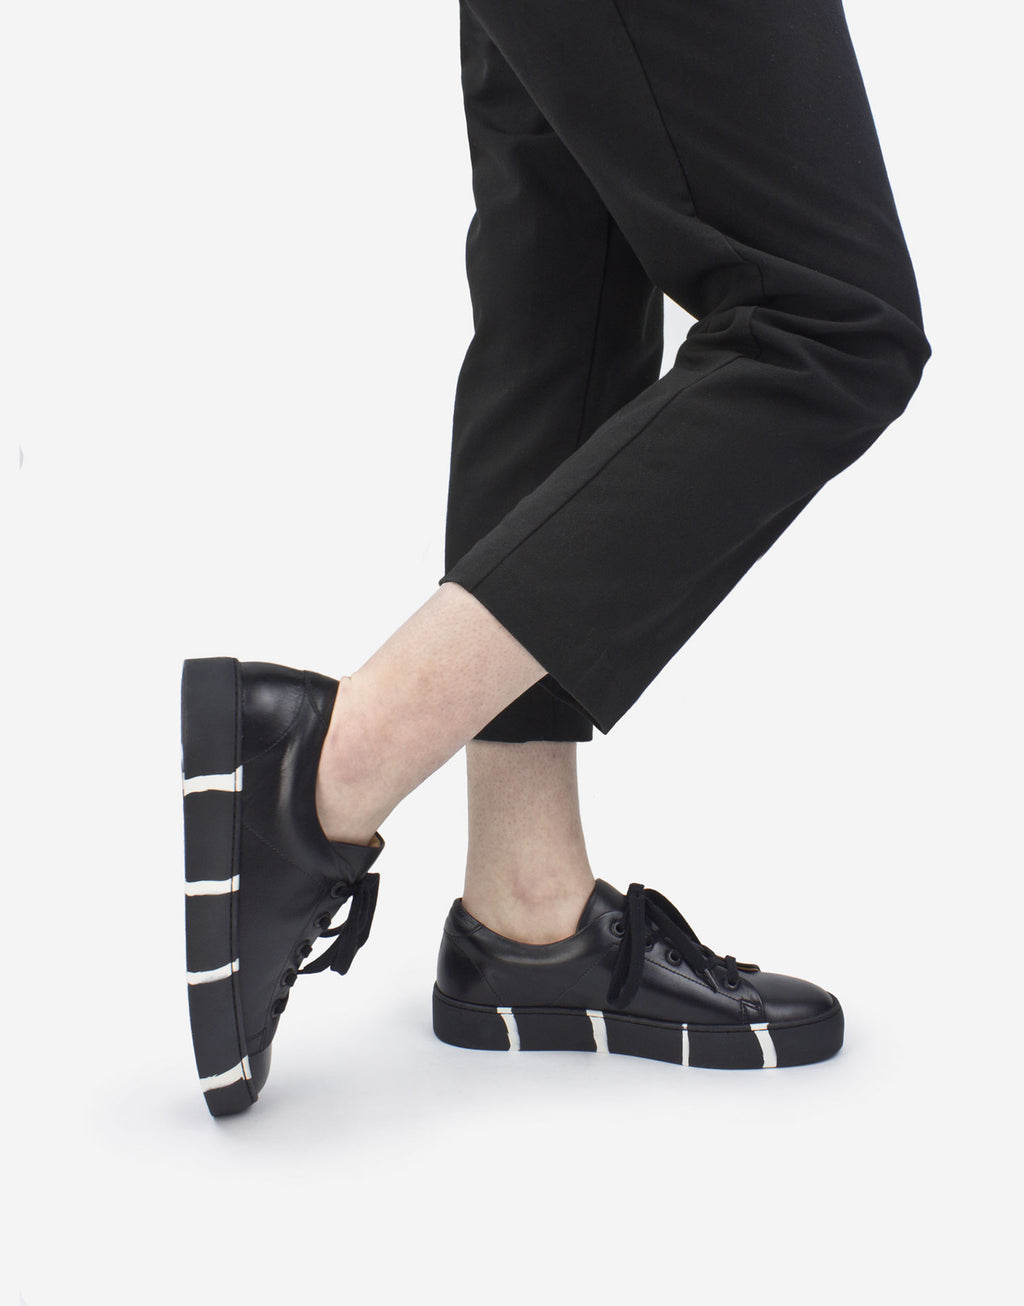 Black leather minimal classic low top sneaker with recycled striped sole by designer Georgina Goodman